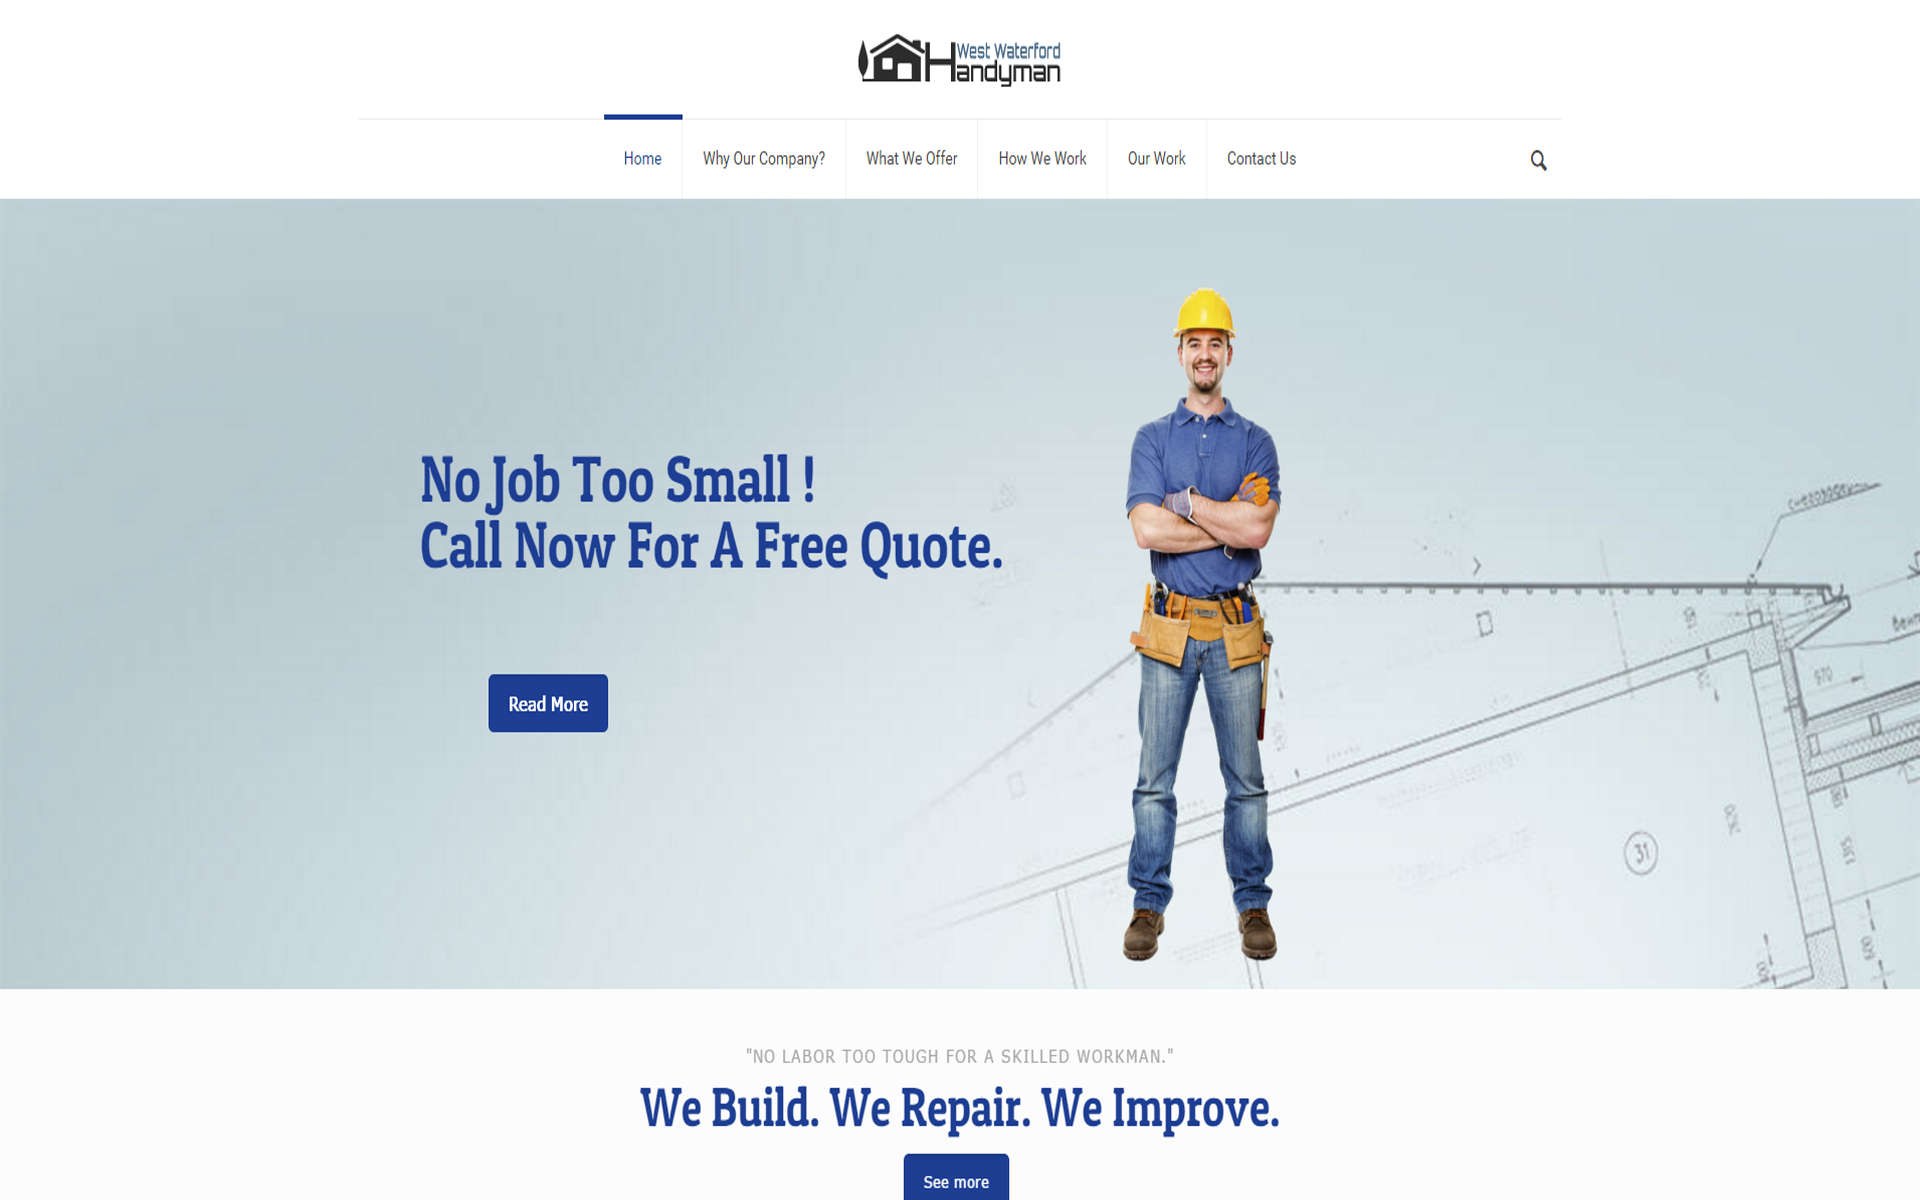 West Waterford Handyman Web Design Twapp Media